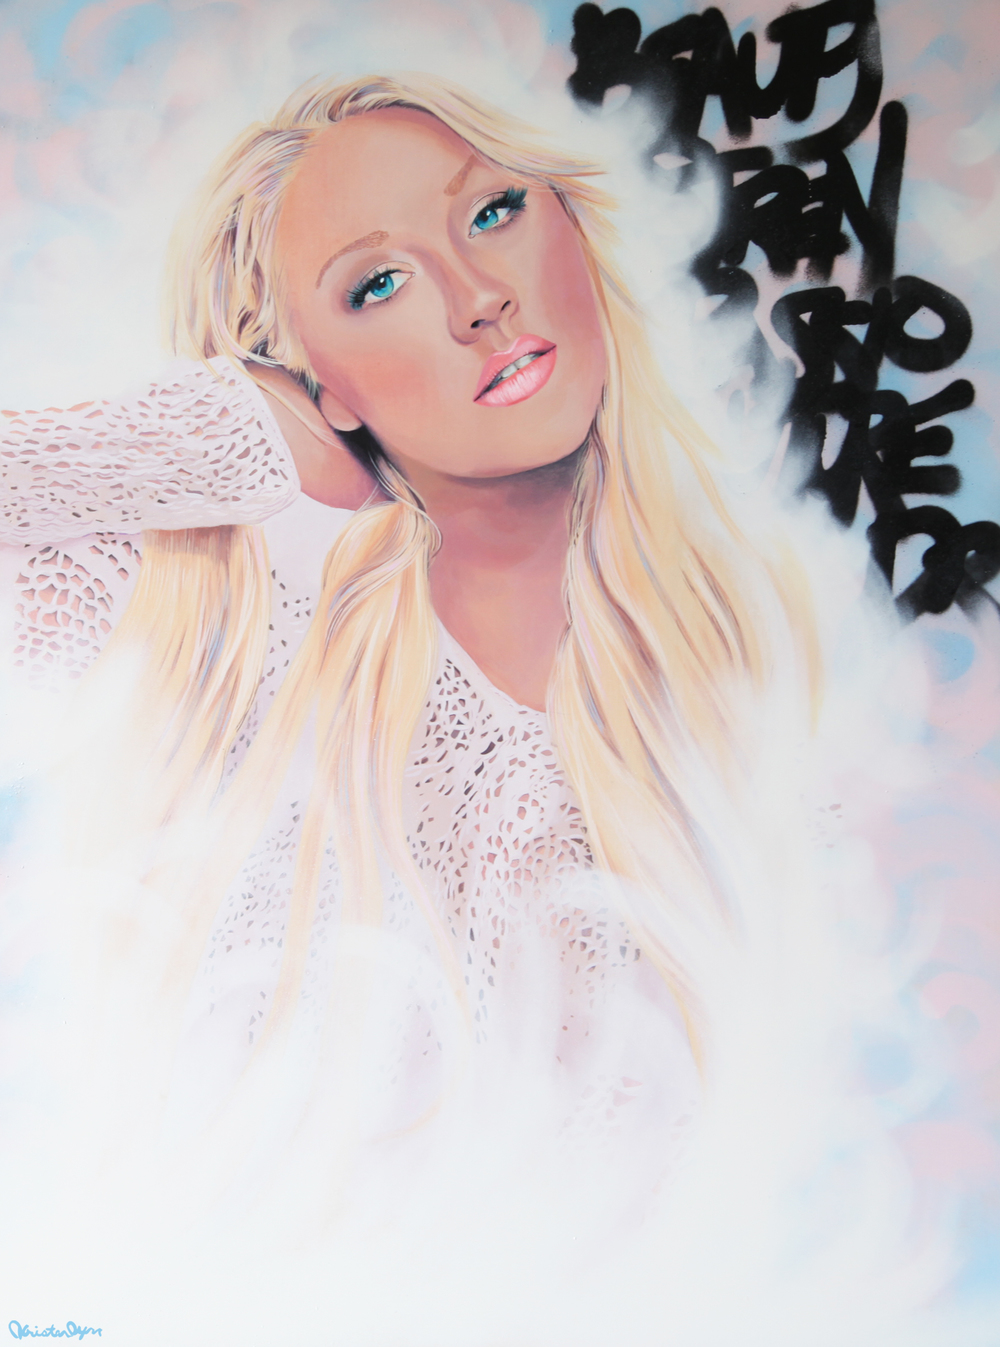 Xtina, 2014, Acrylic and spray paint on wood panel